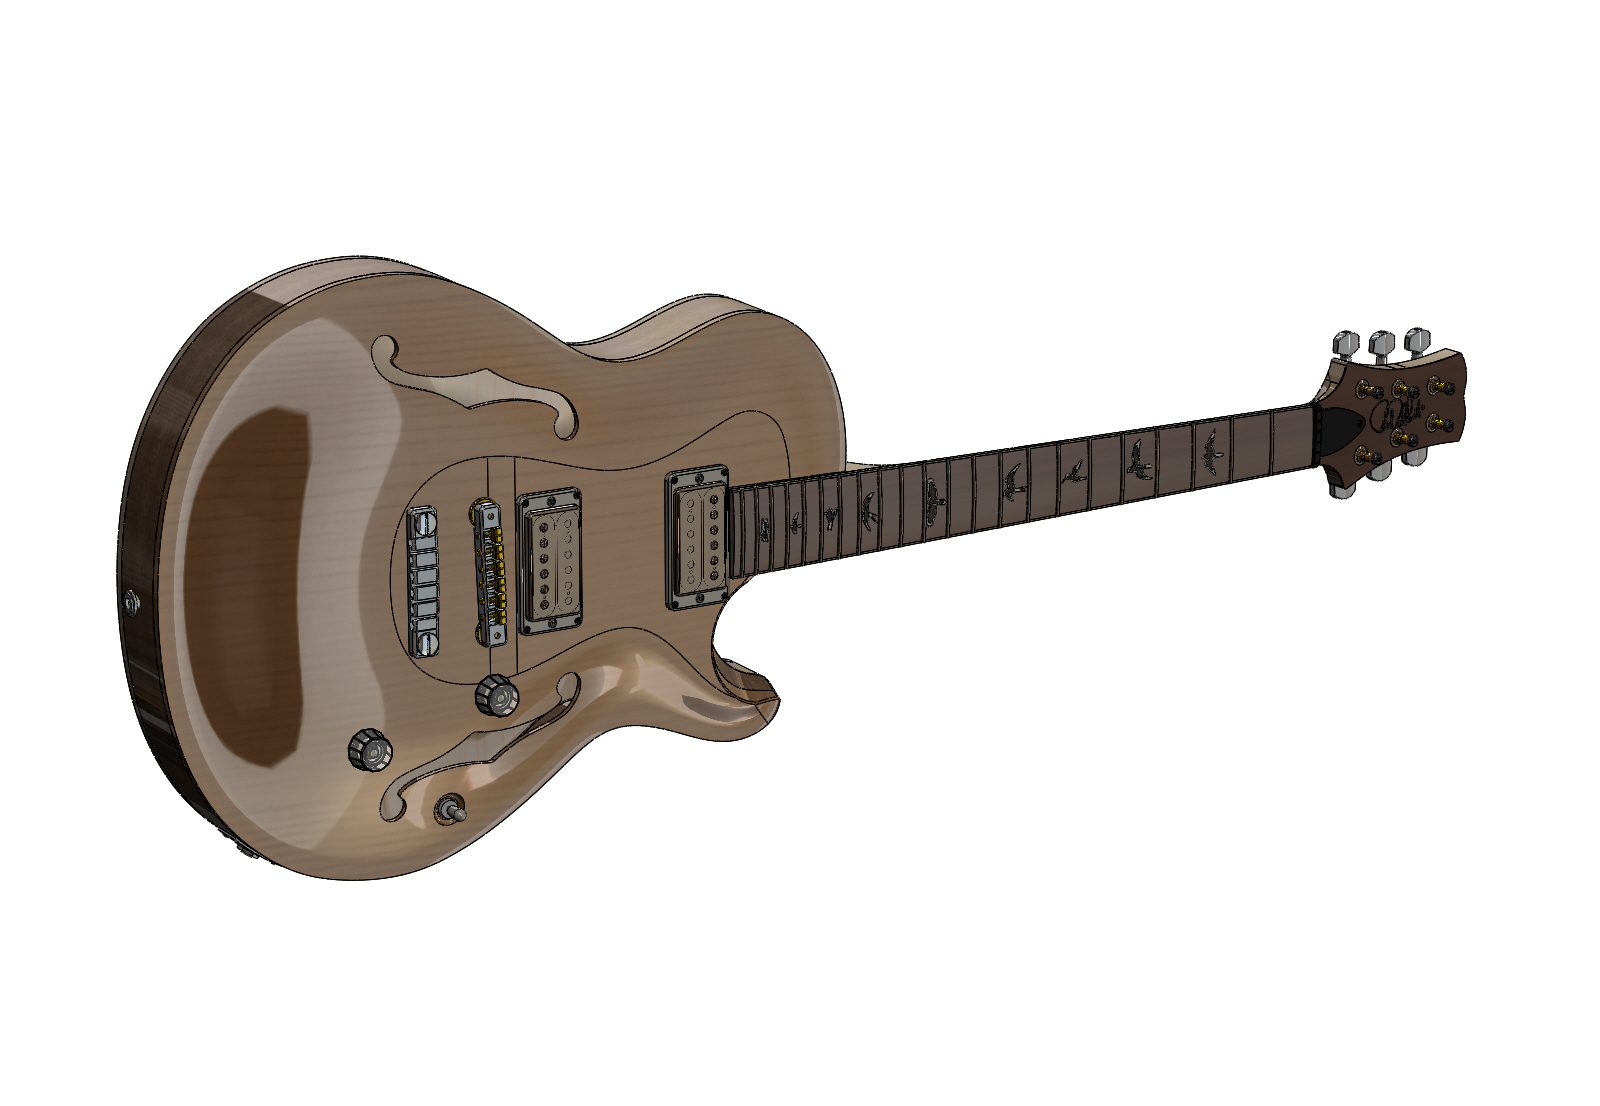 Paul Reed Smith (PRS) Guitars: Commitment to Innovation